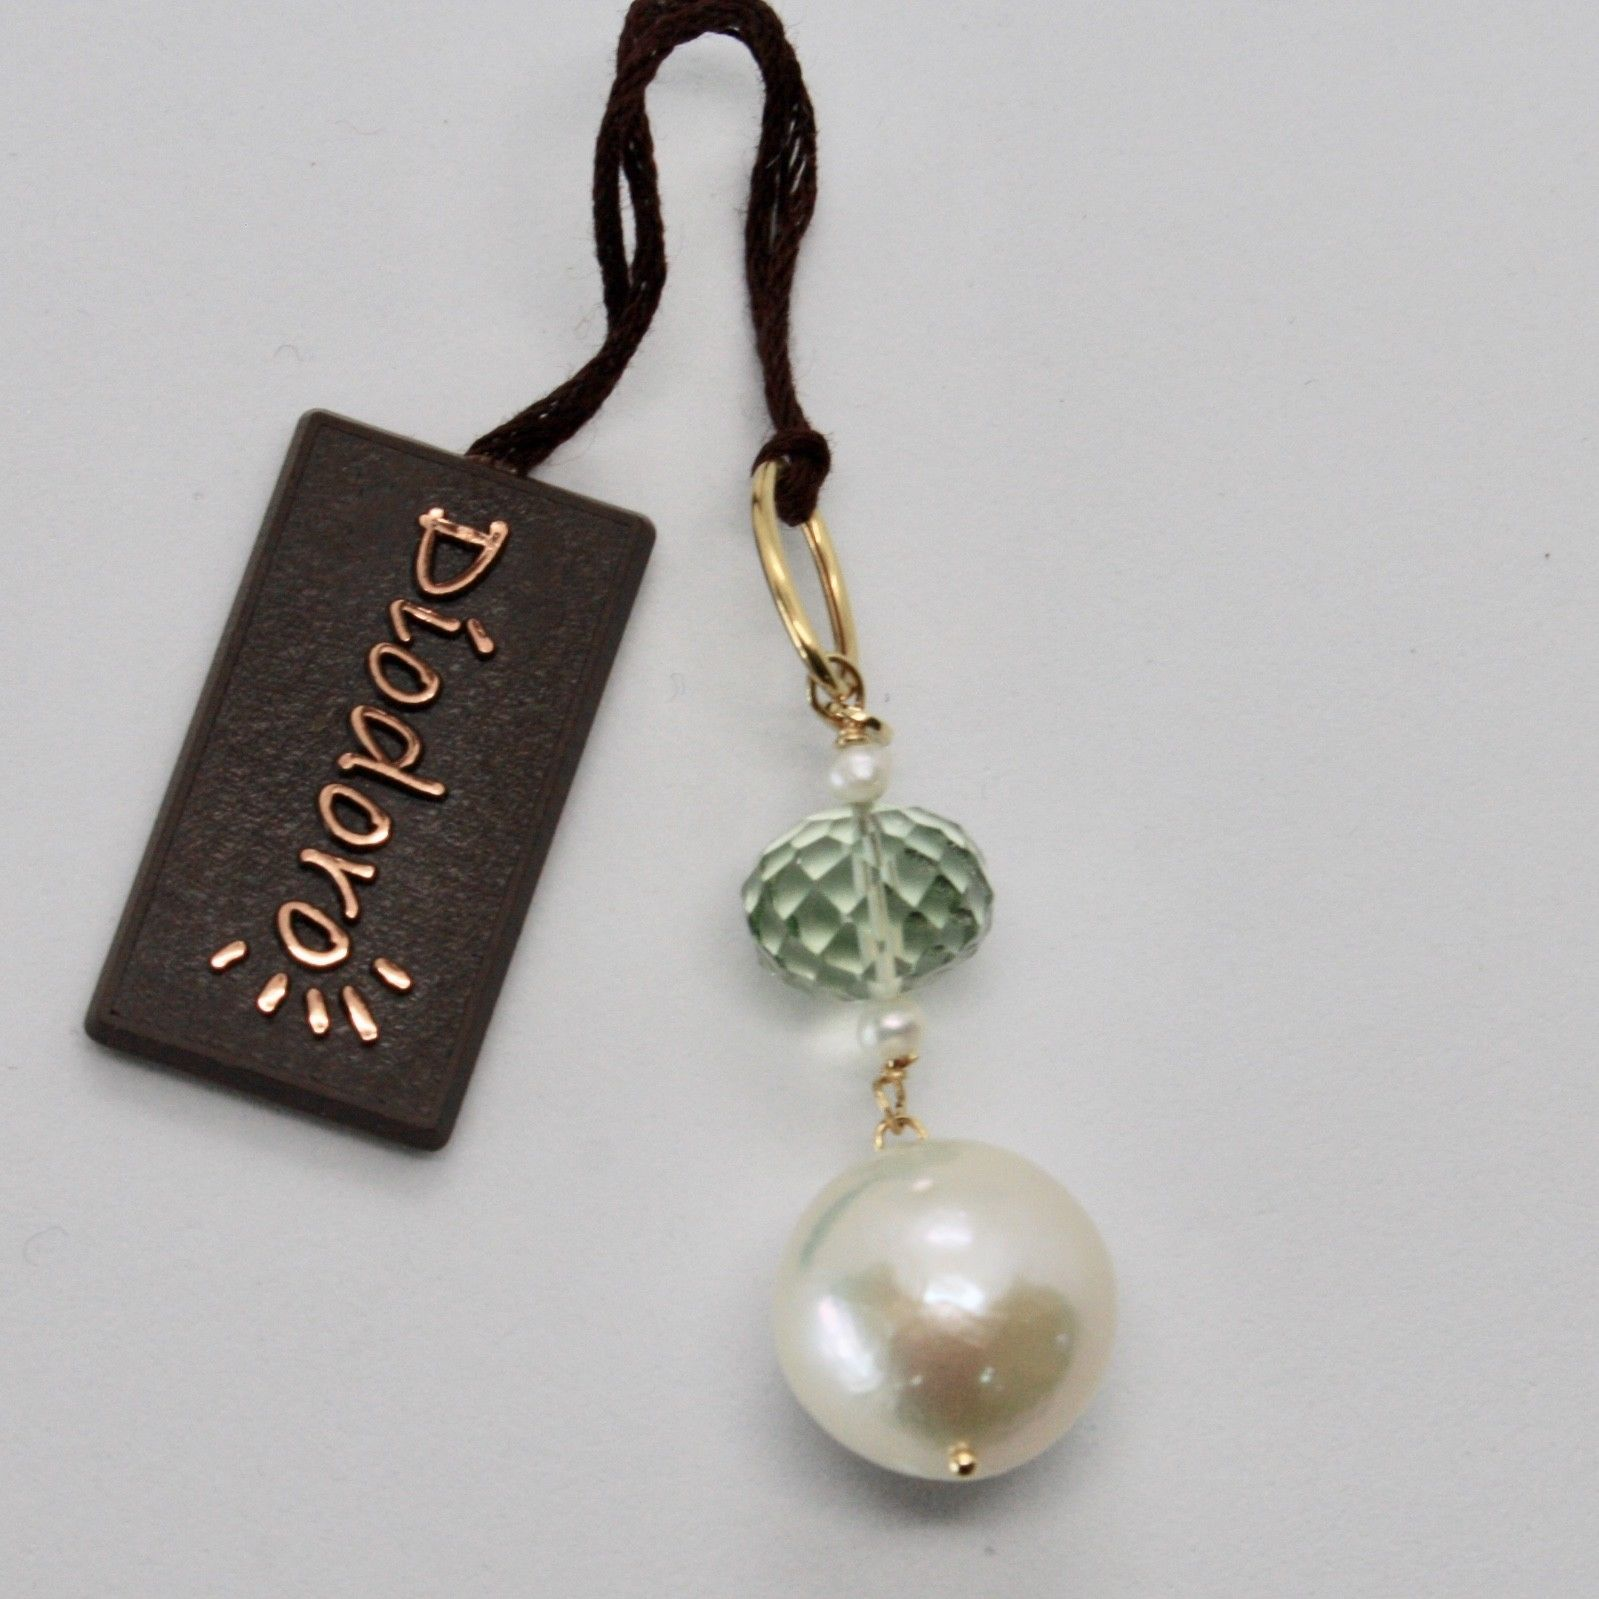 PENDANT YELLOW GOLD 18KT WITH PEARL WHITE OF WATER DOLCE AND PRASIOLITE GREEN